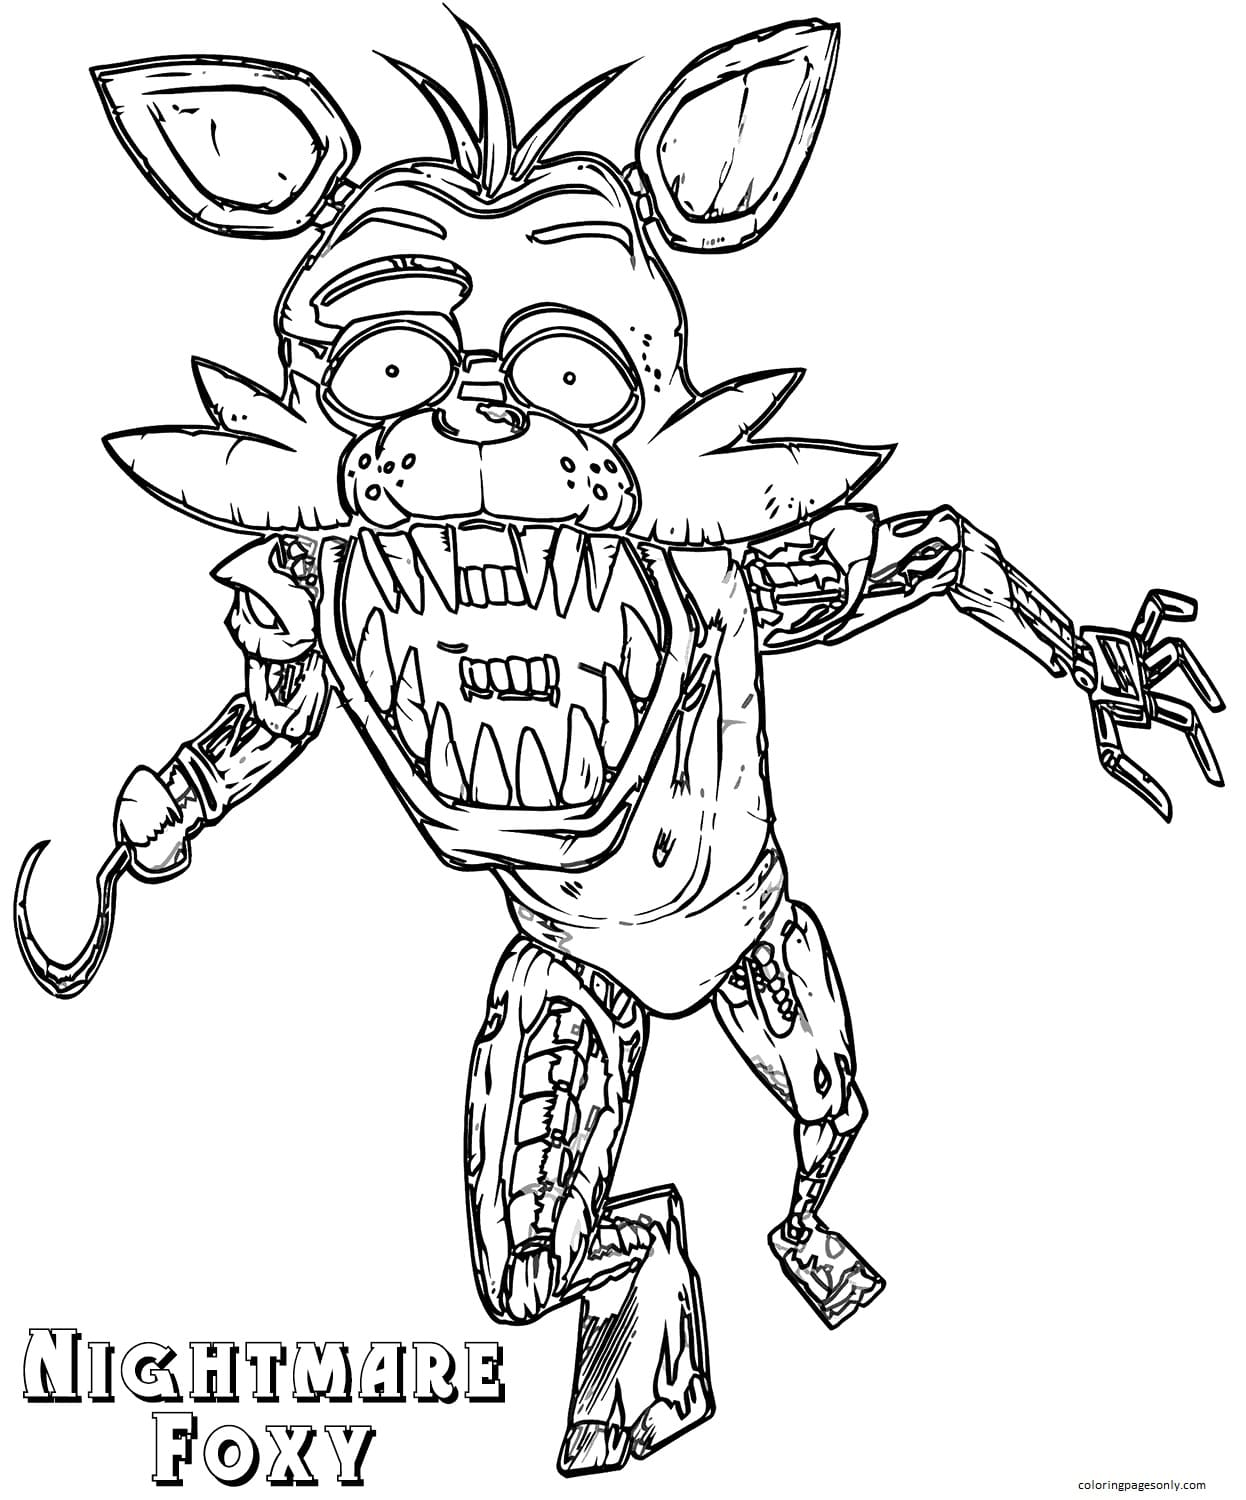 Nightmare Foxy Coloring Page